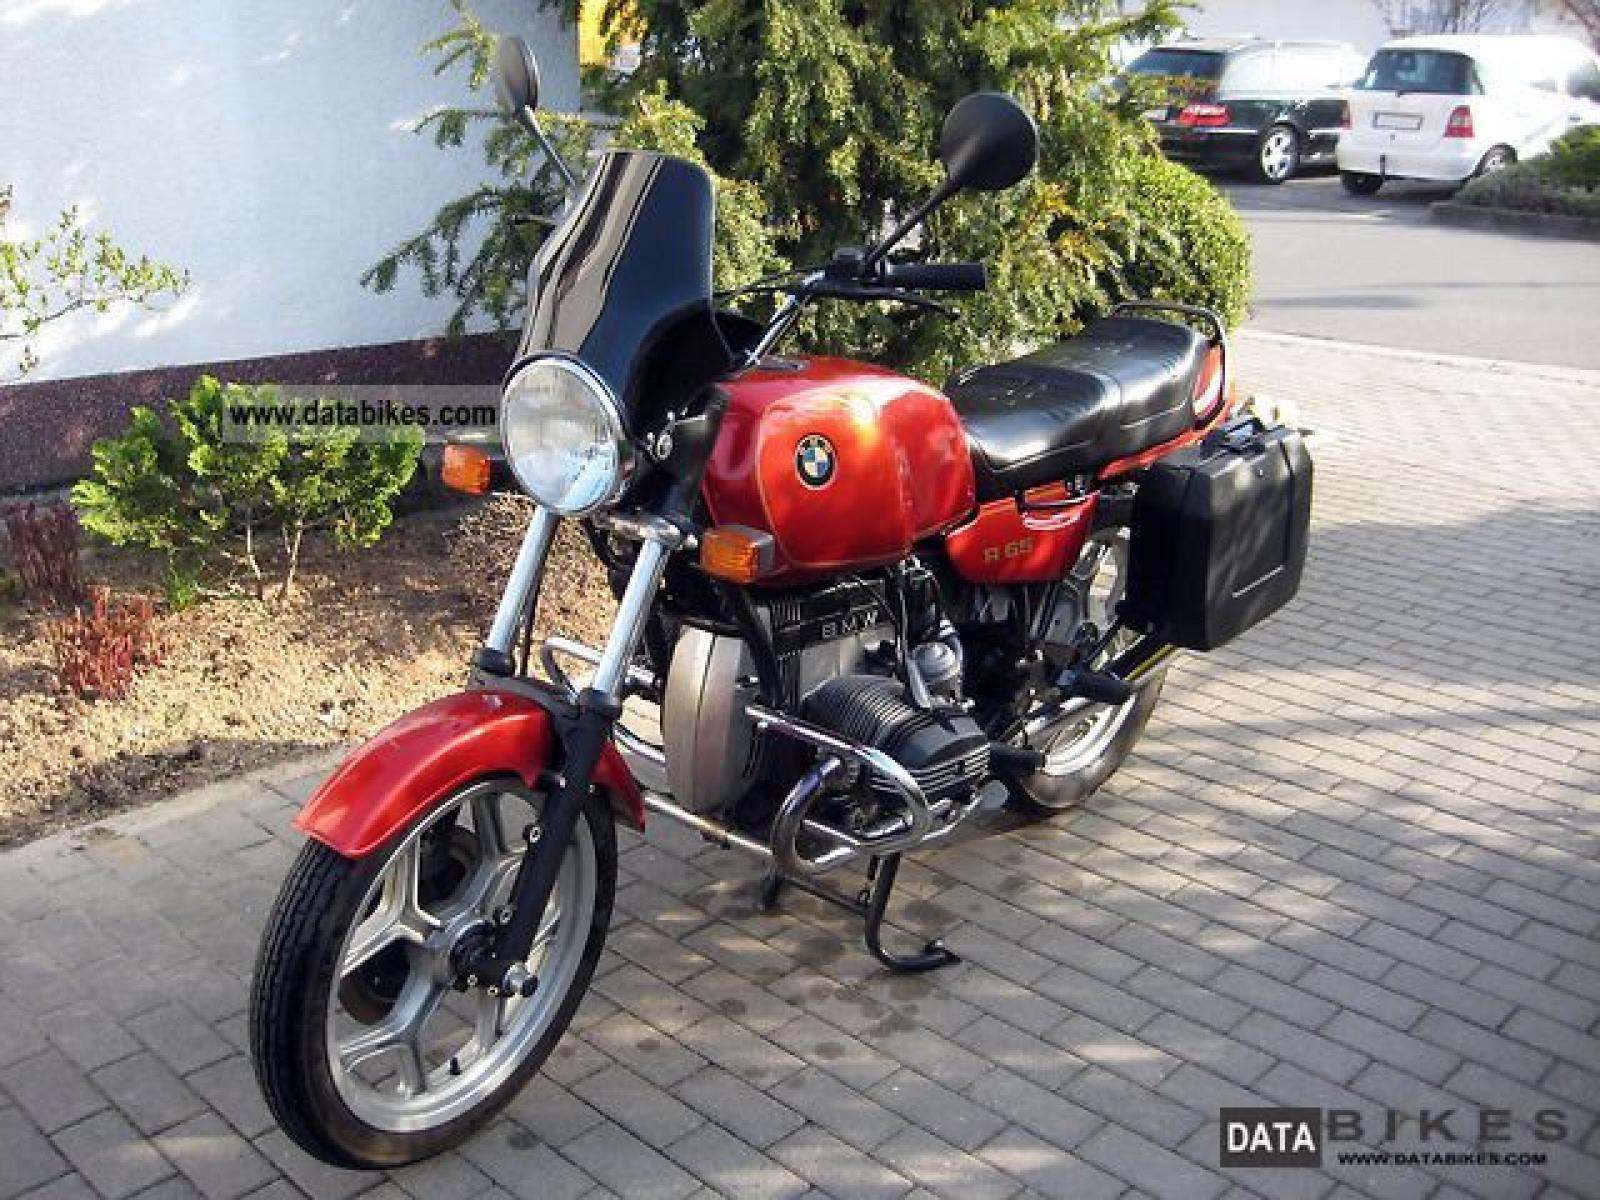 BMW R65 (reduced effect) 1990 images #10689